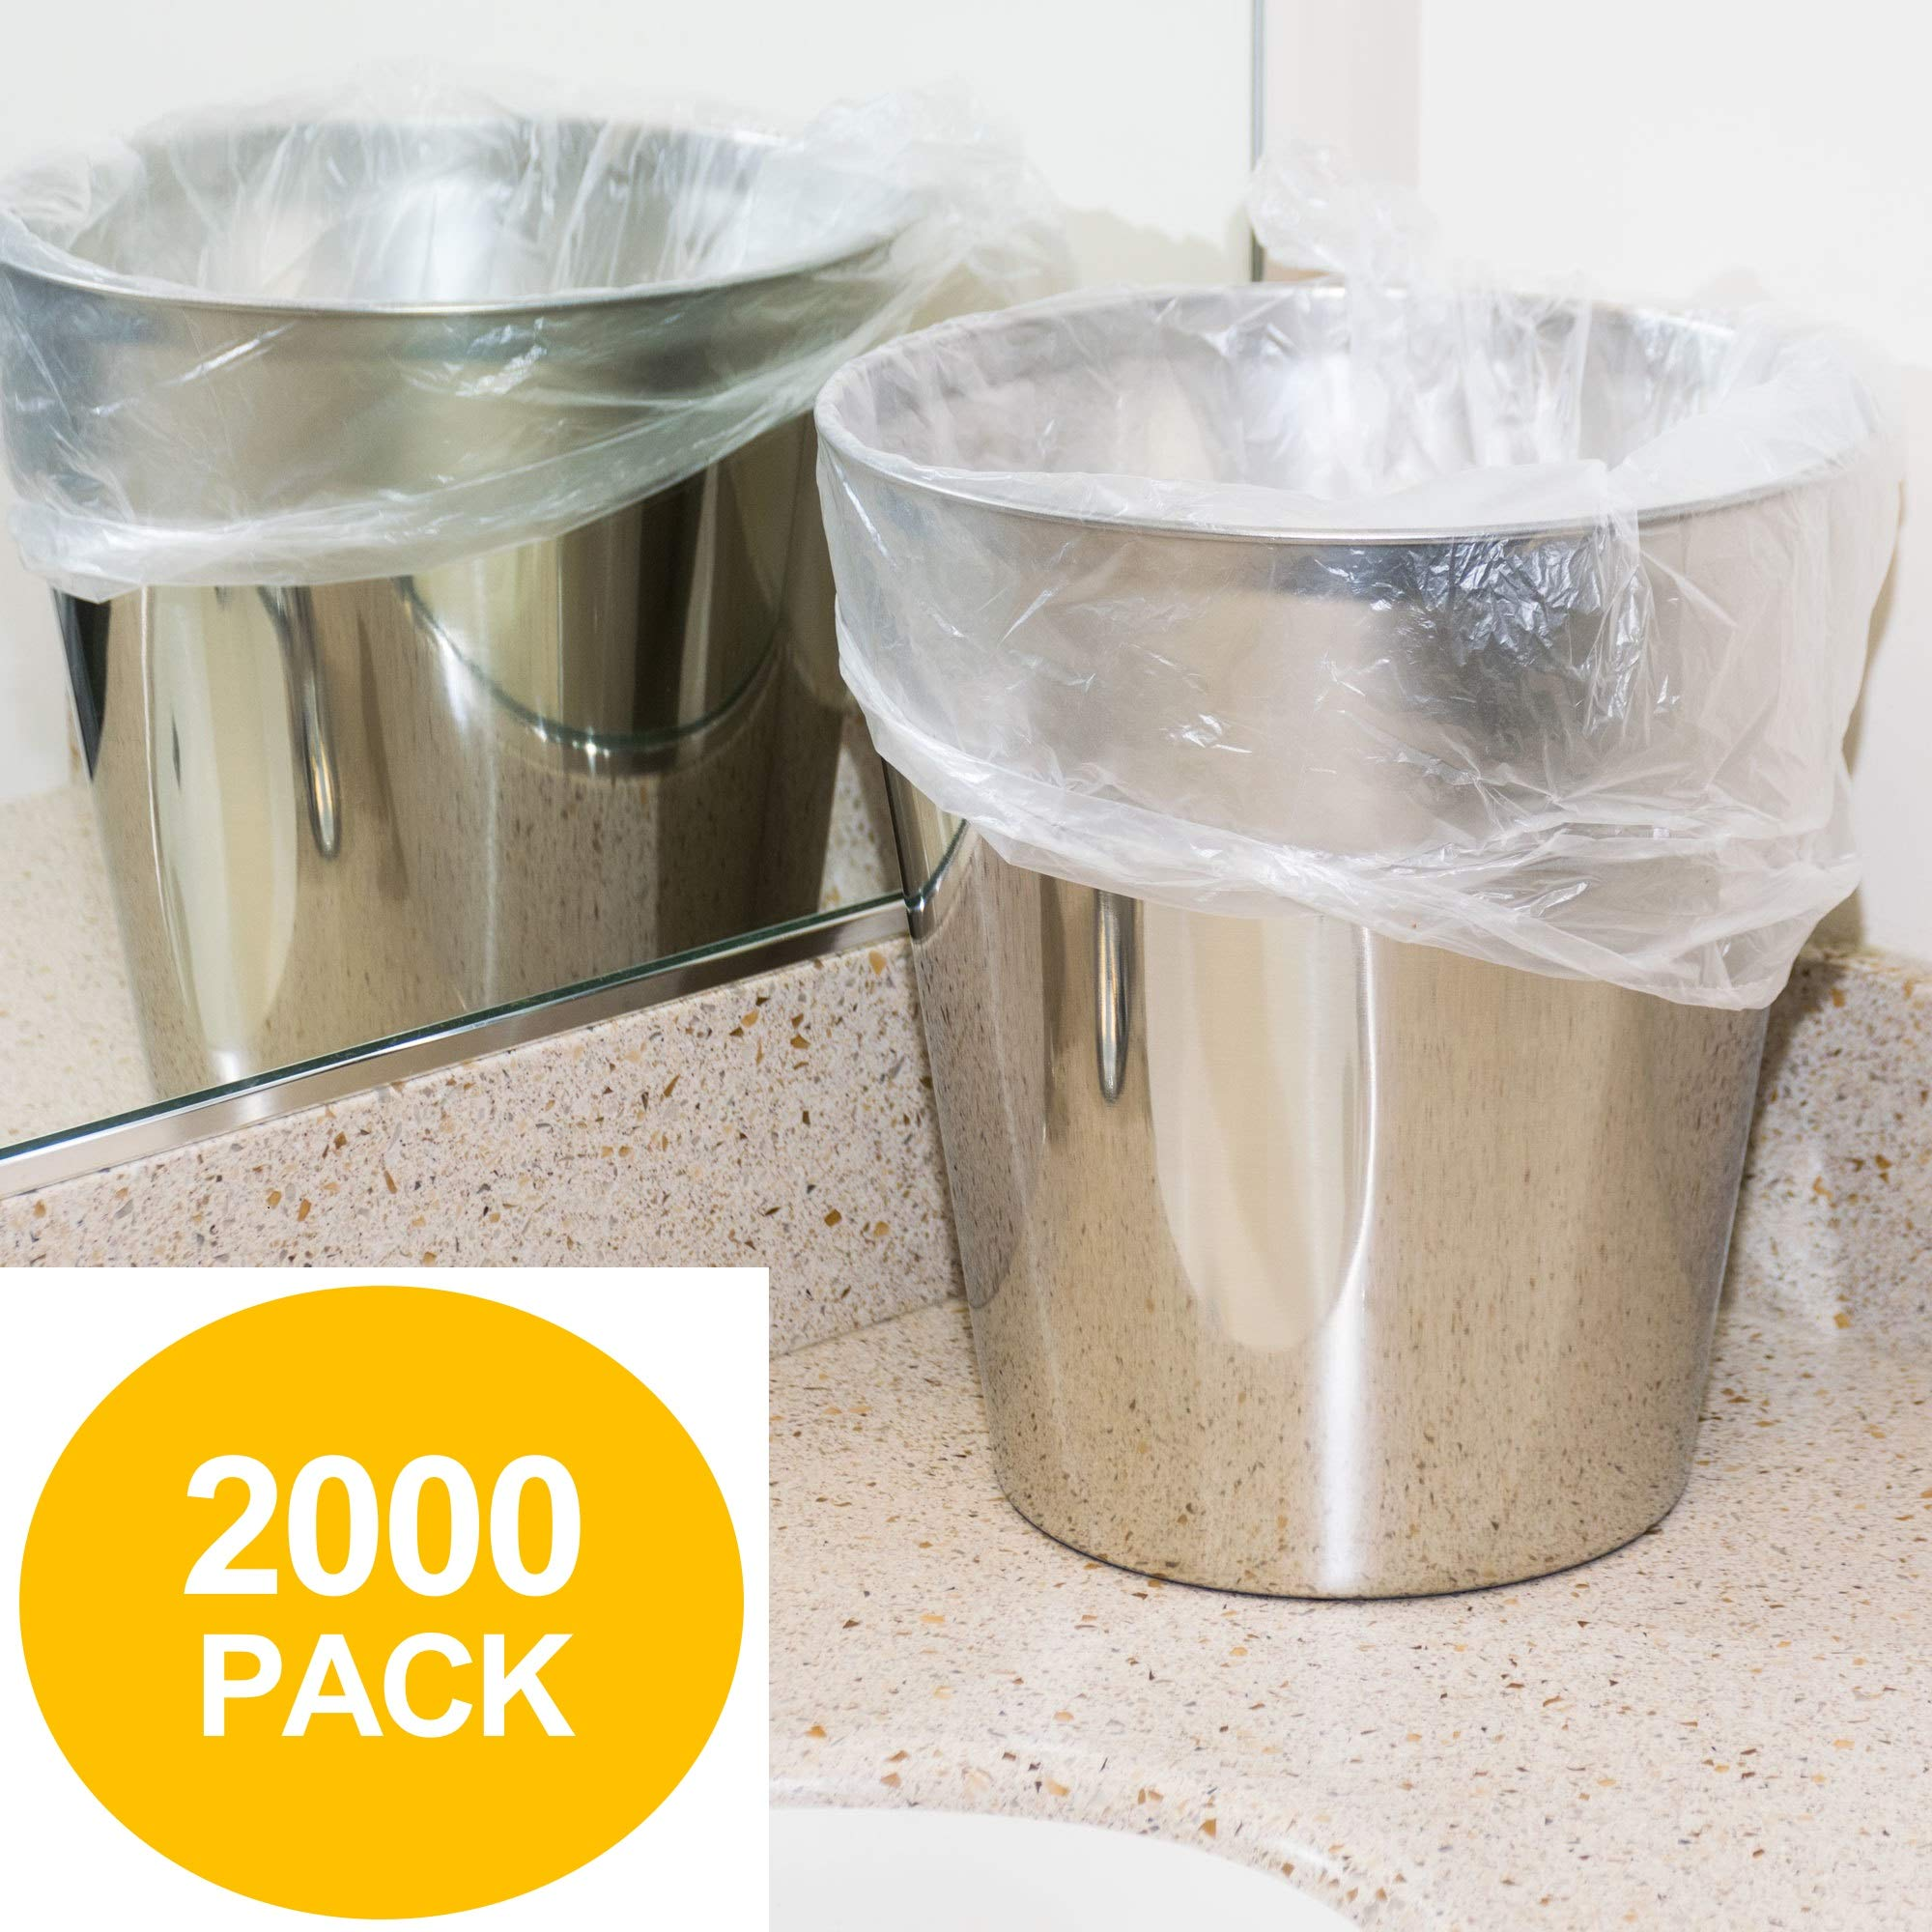 4 Gallon Trash Bags - 2000 Small Mini Garbage Bags | 17'' x 18'' Clear Waste Basket Trash Bags | Bulk Plastic Bathroom Trash Can Liners by Leano Line